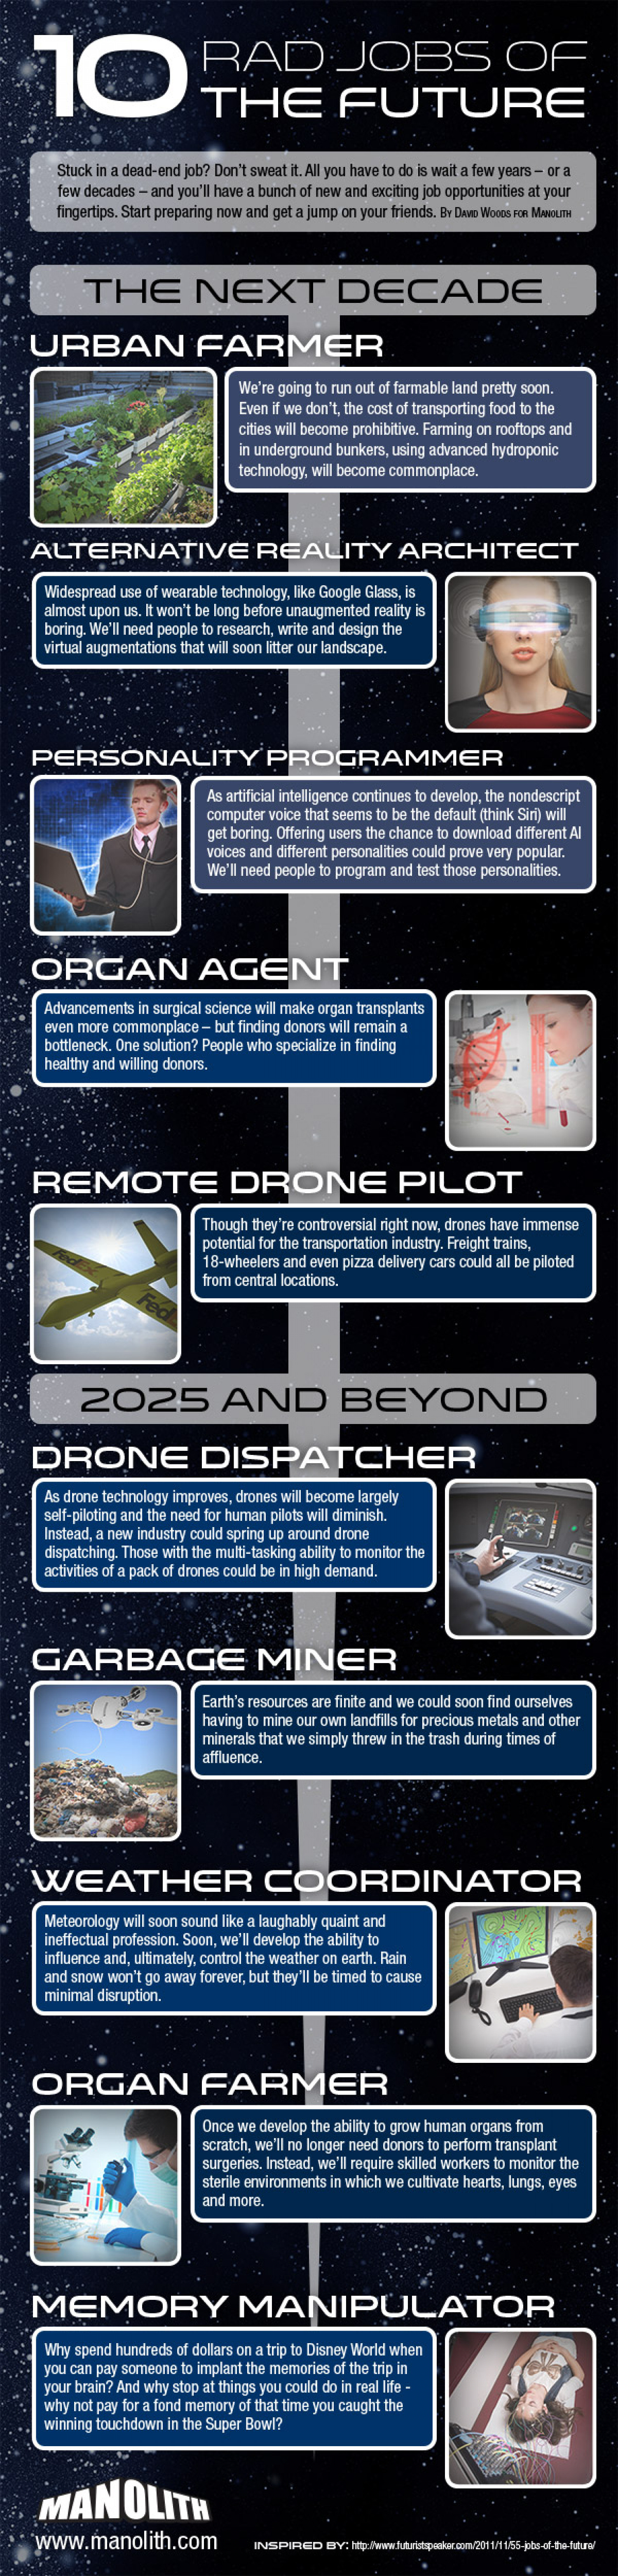 10 Rad Jobs of the Future Infographic